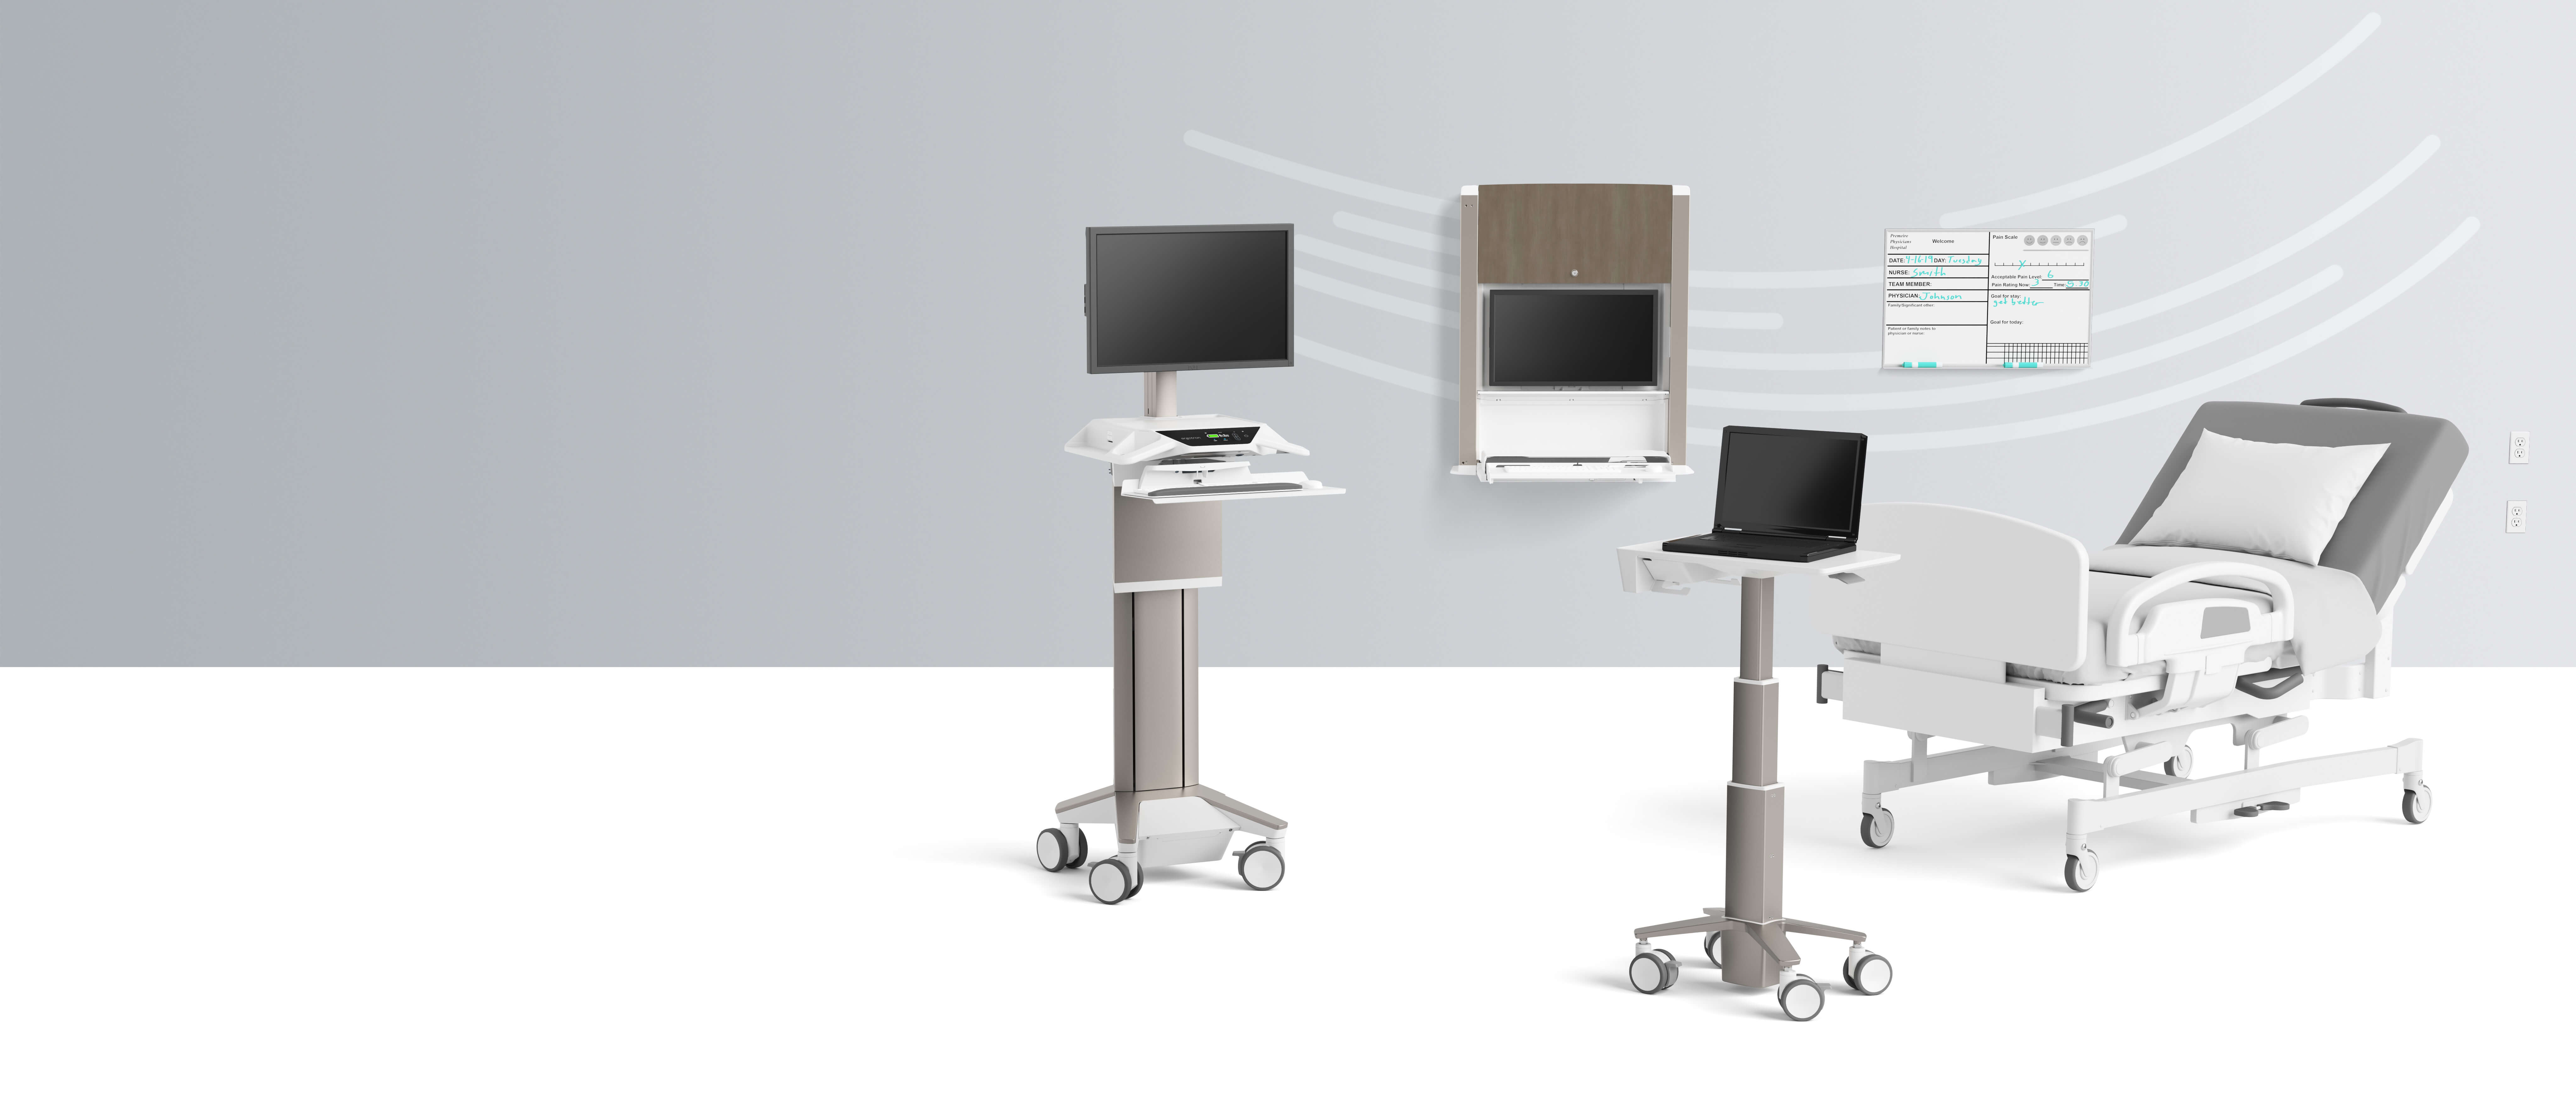 Two desks with hospital bed